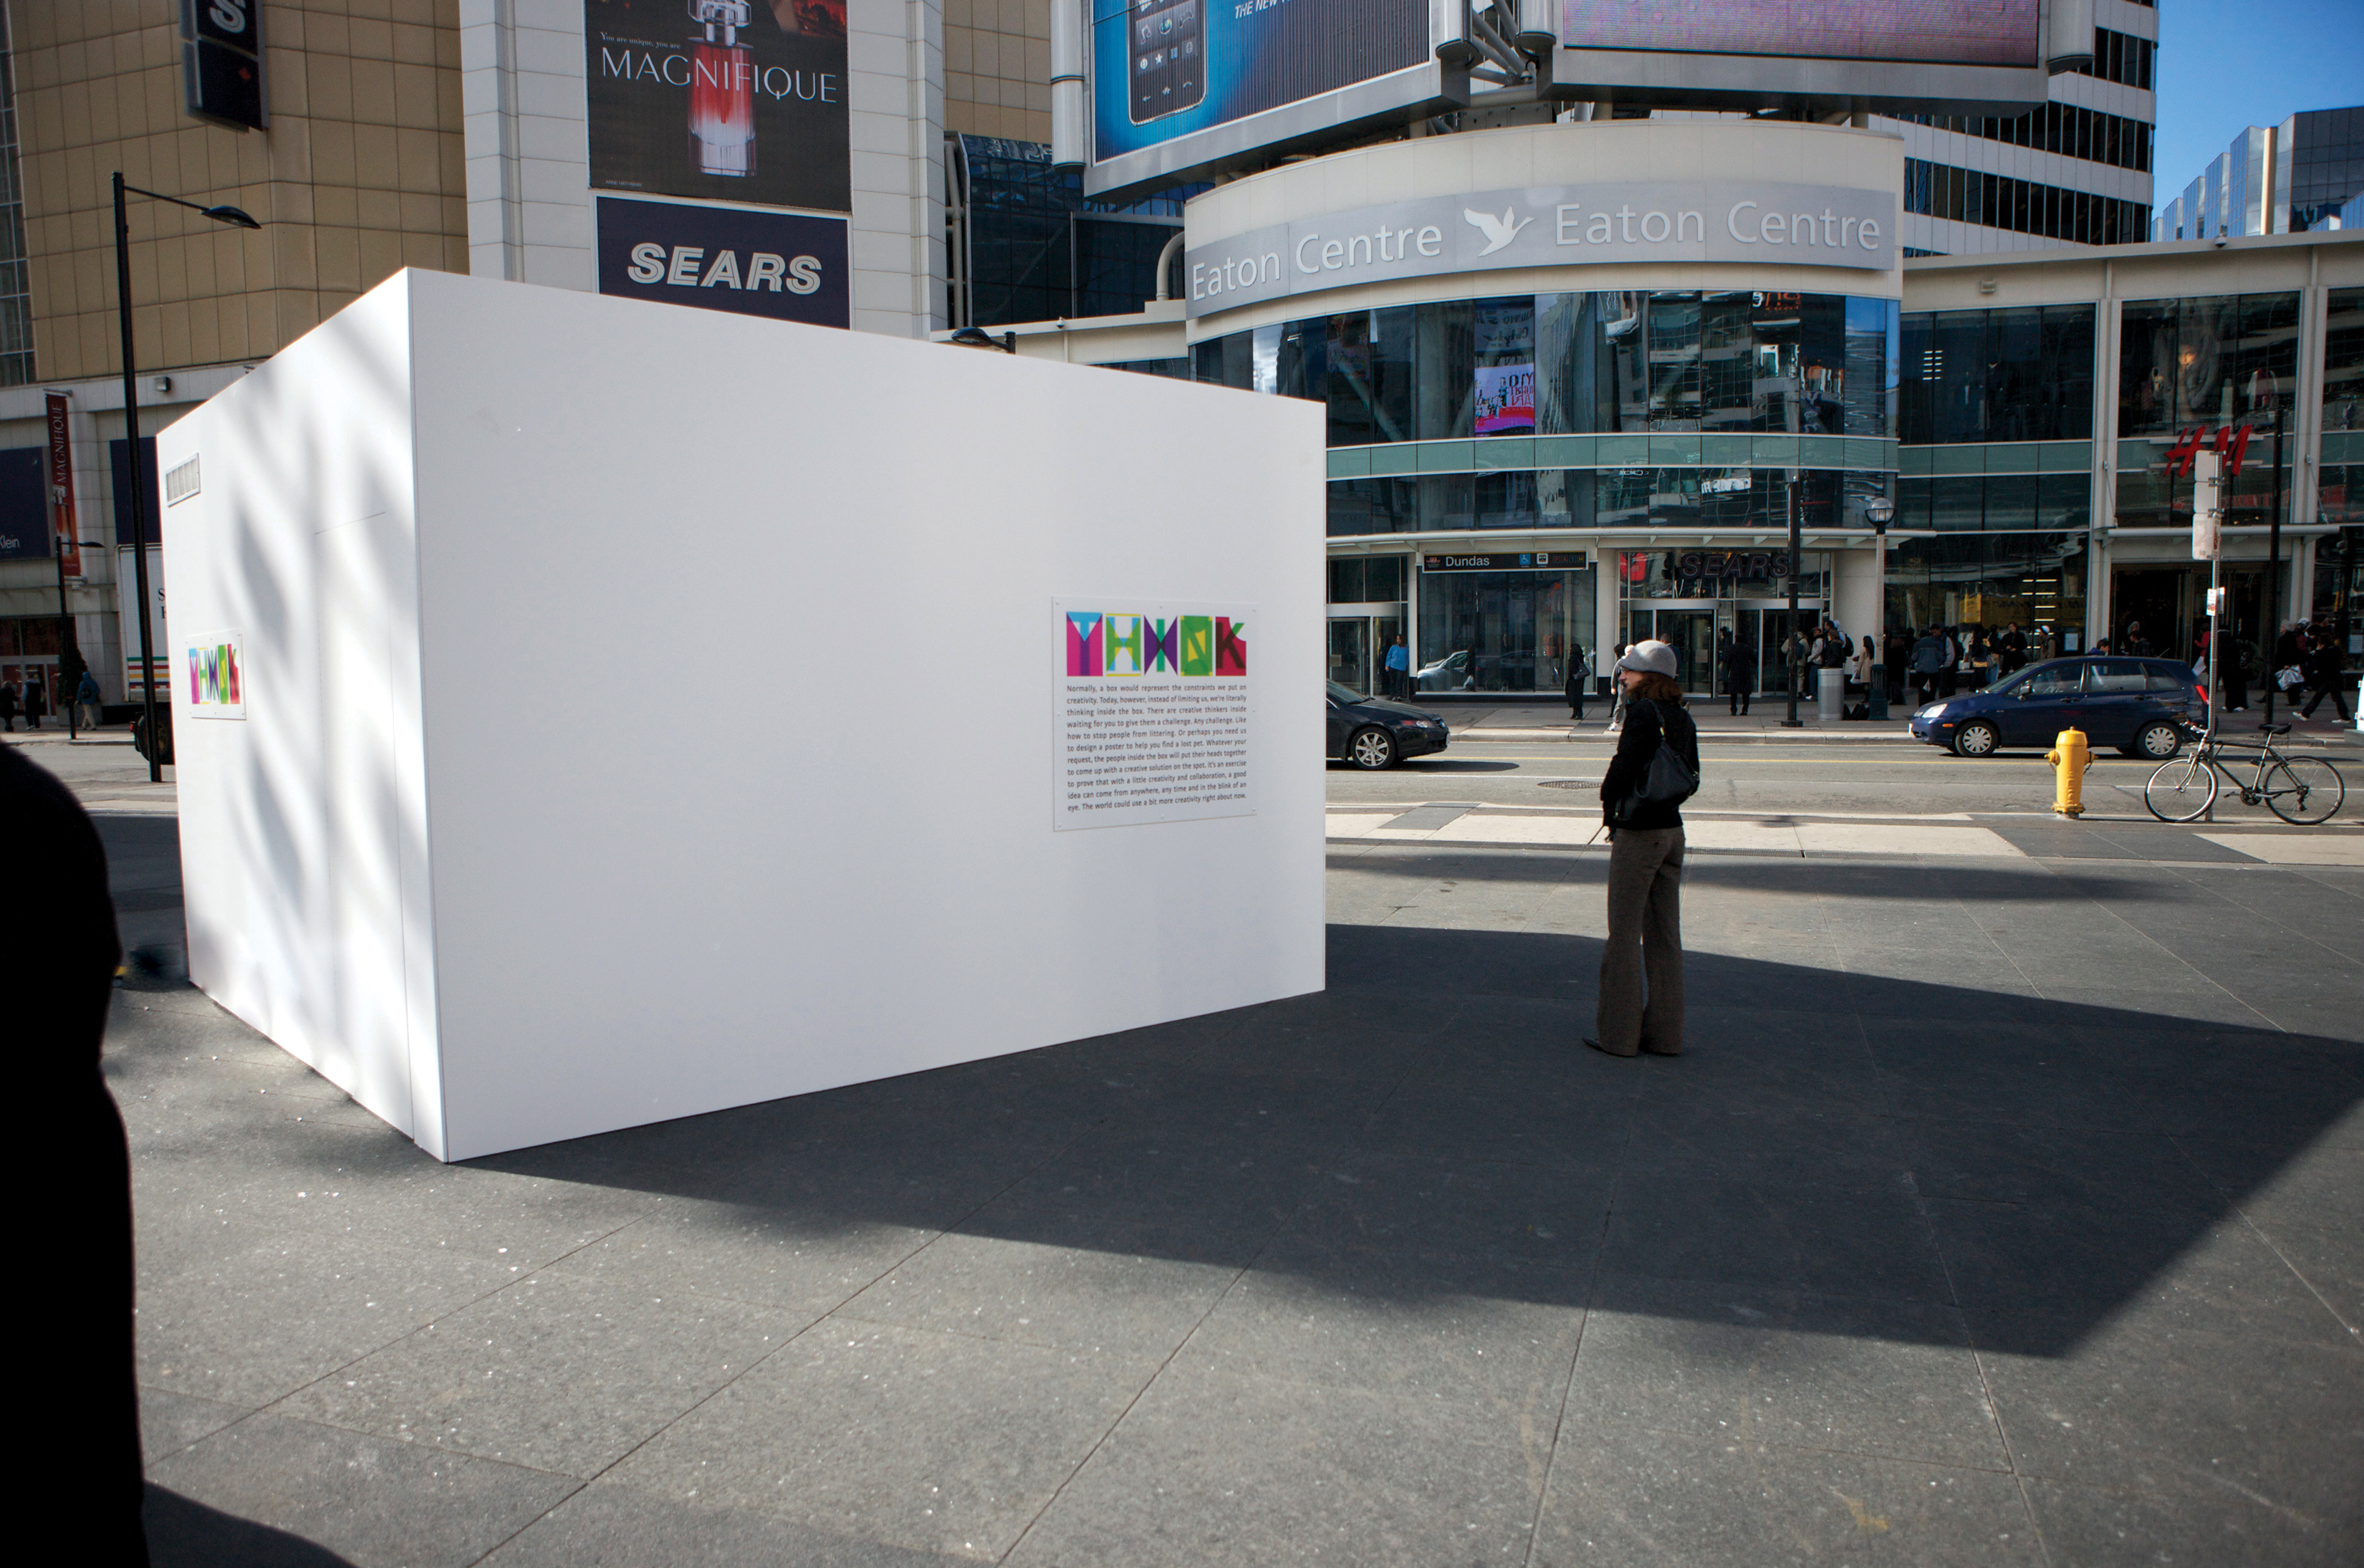 To launch his fledgling agency, Zak Mroueh dropped a box in the middle of Yonge-Dundas Square and asked passersby to pose any creative challenge. Inside, the team was tasked with dreaming up unique solutions in a 20-minute set time limit.